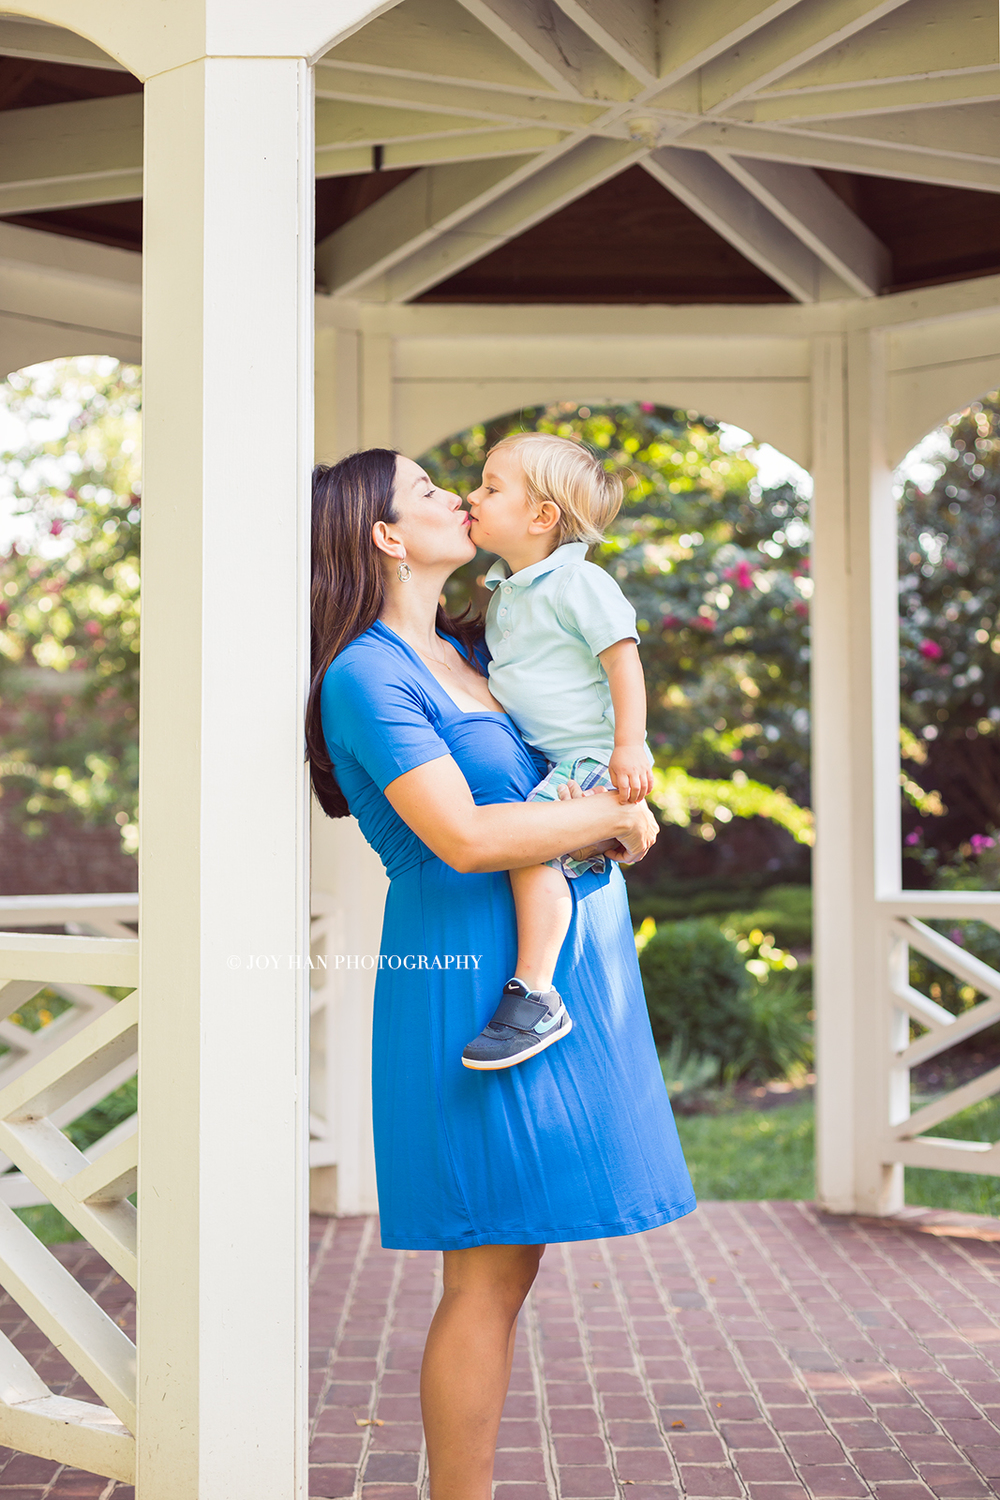 Lifestyle Maternity Photography | Maternity Photographer in Leesburg VA